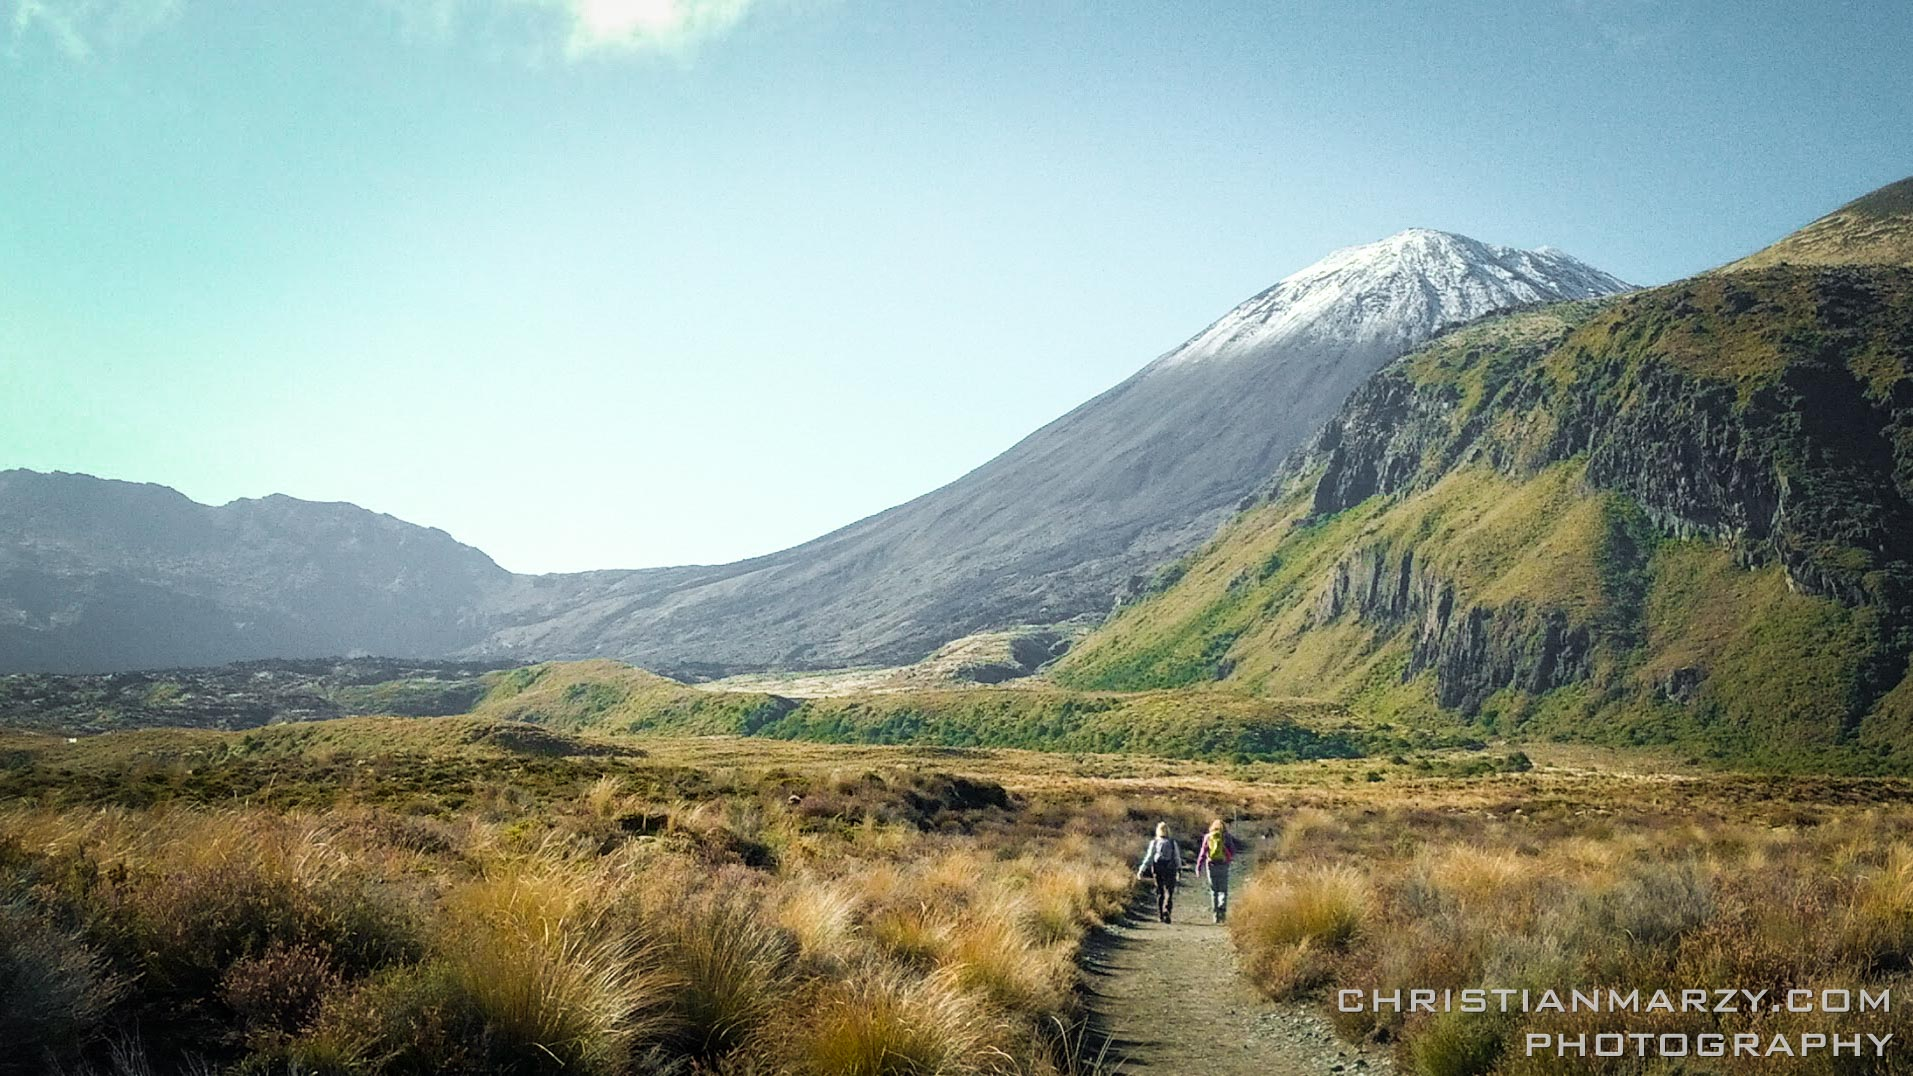 christian marzy photography travel tourism landscape tongariro